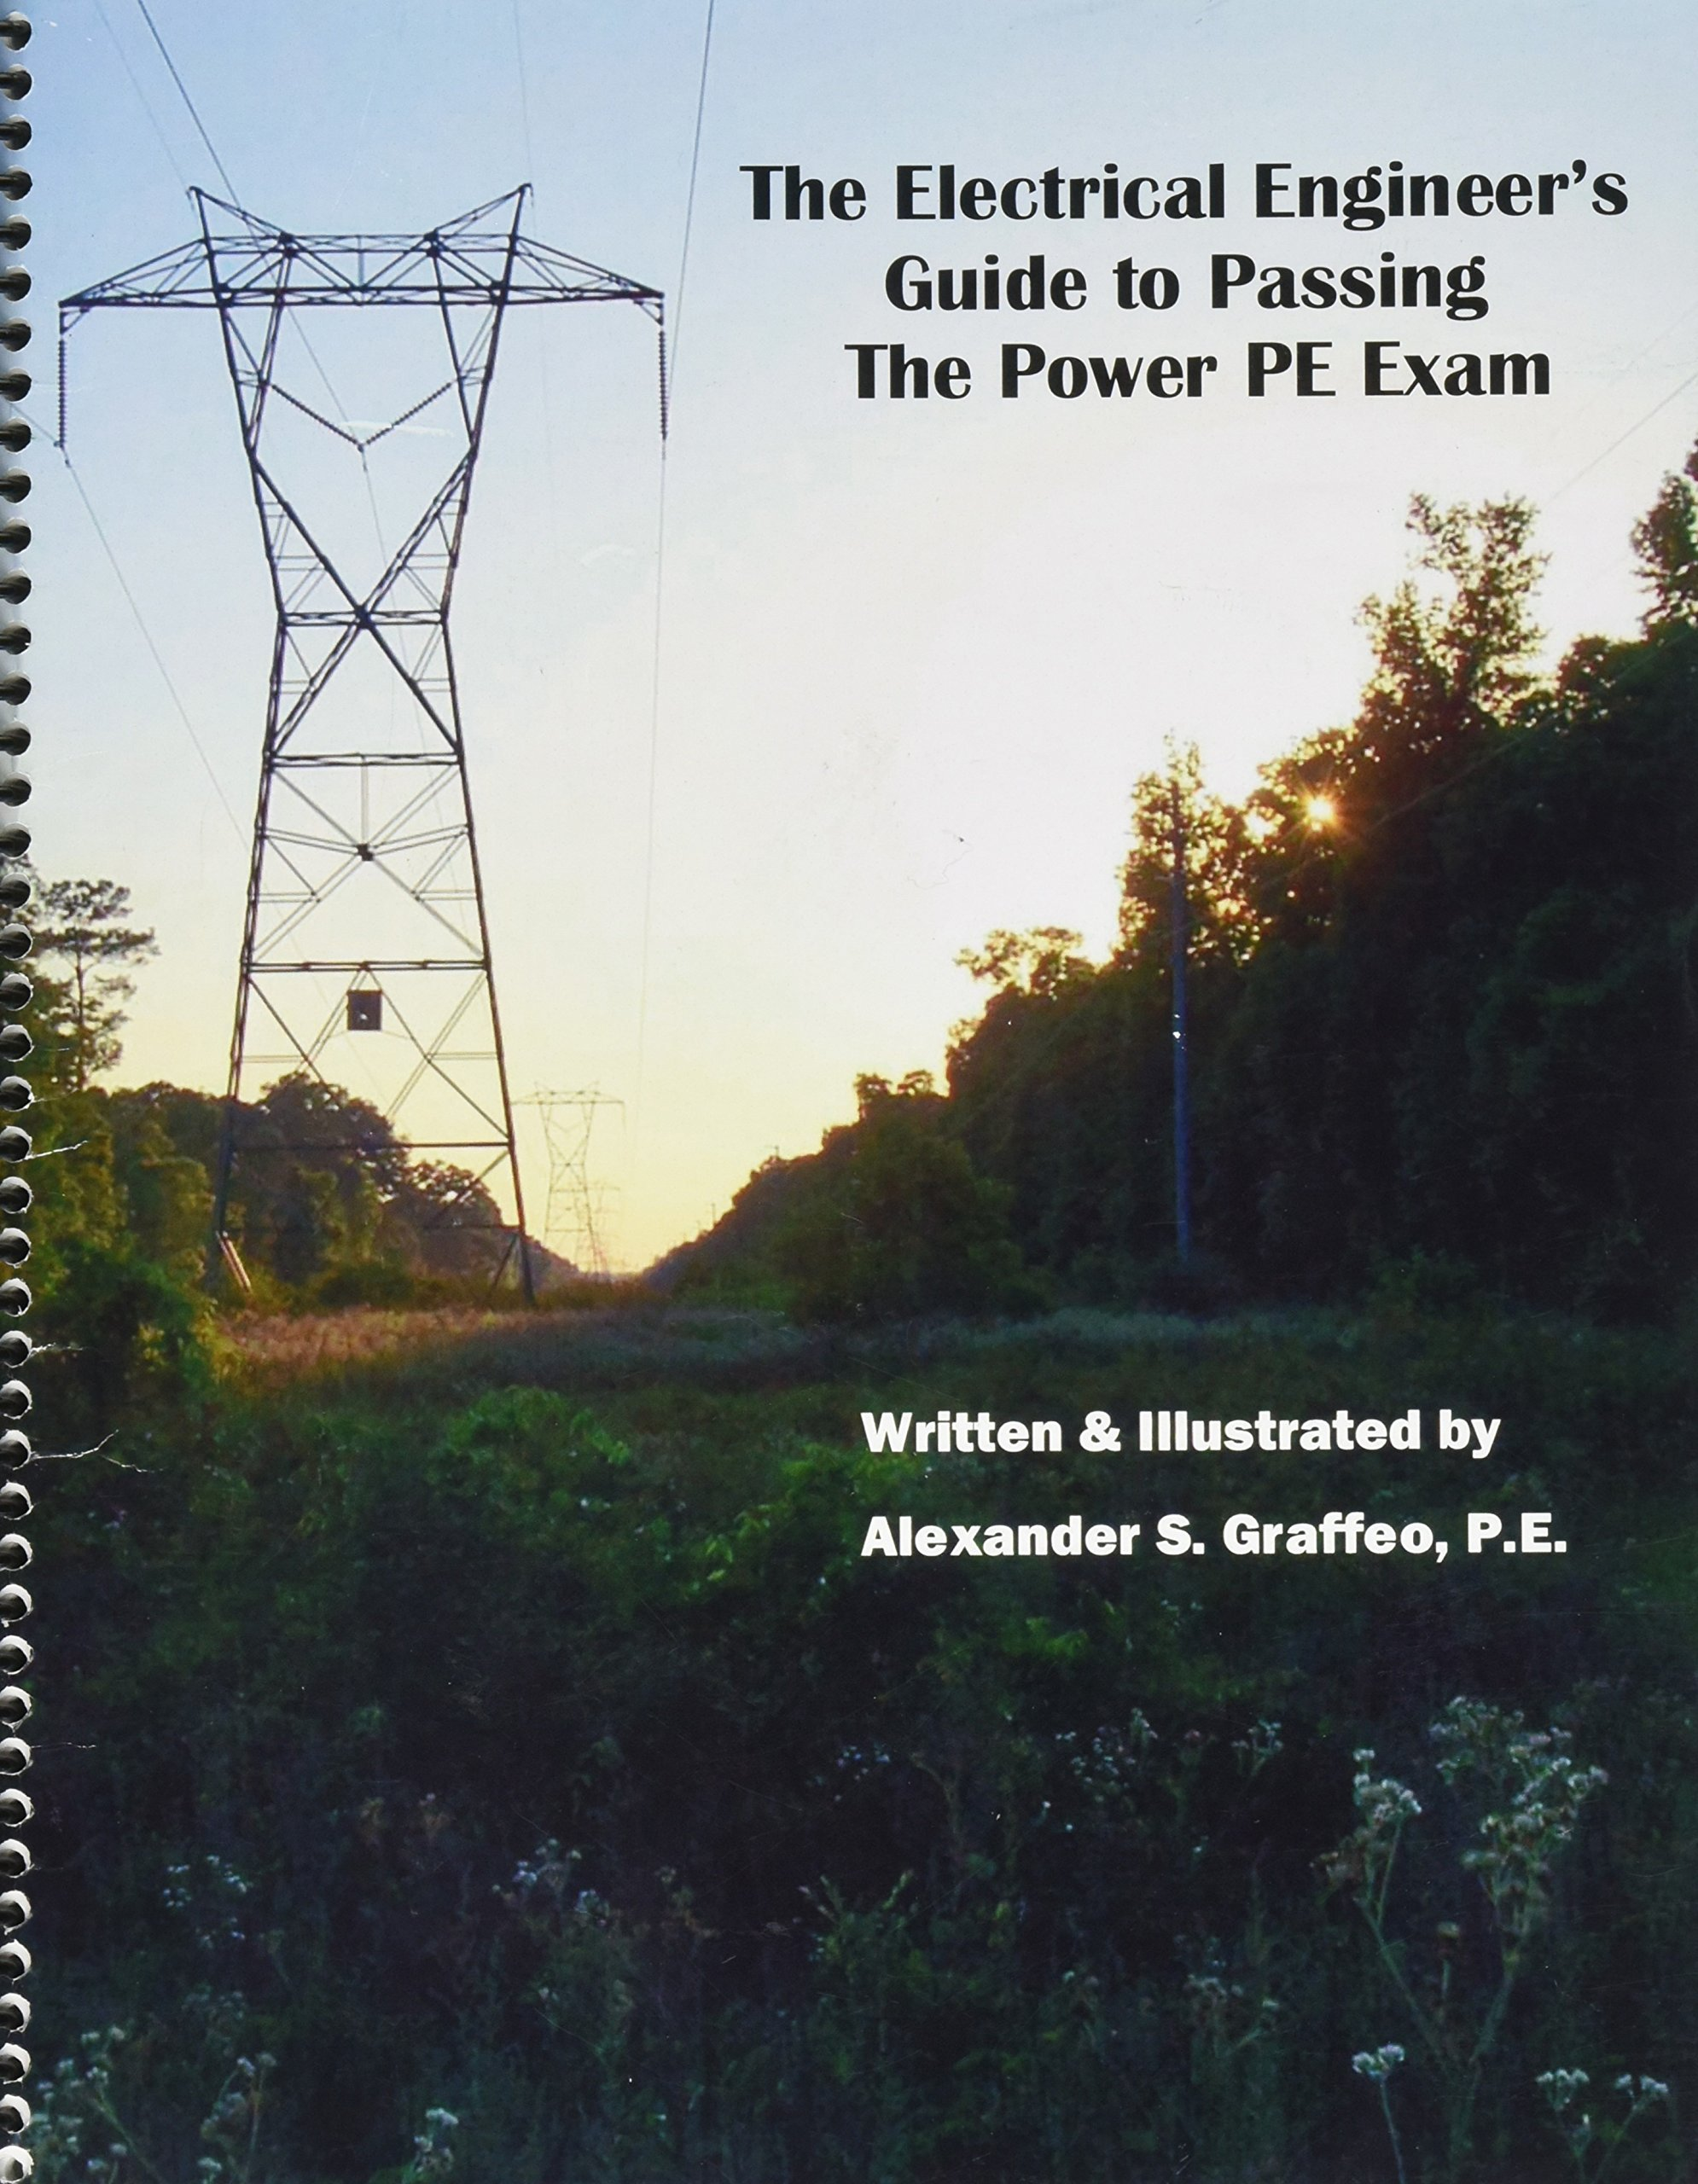 Electrical Engineer's Guide to Passing the Power PE Exam